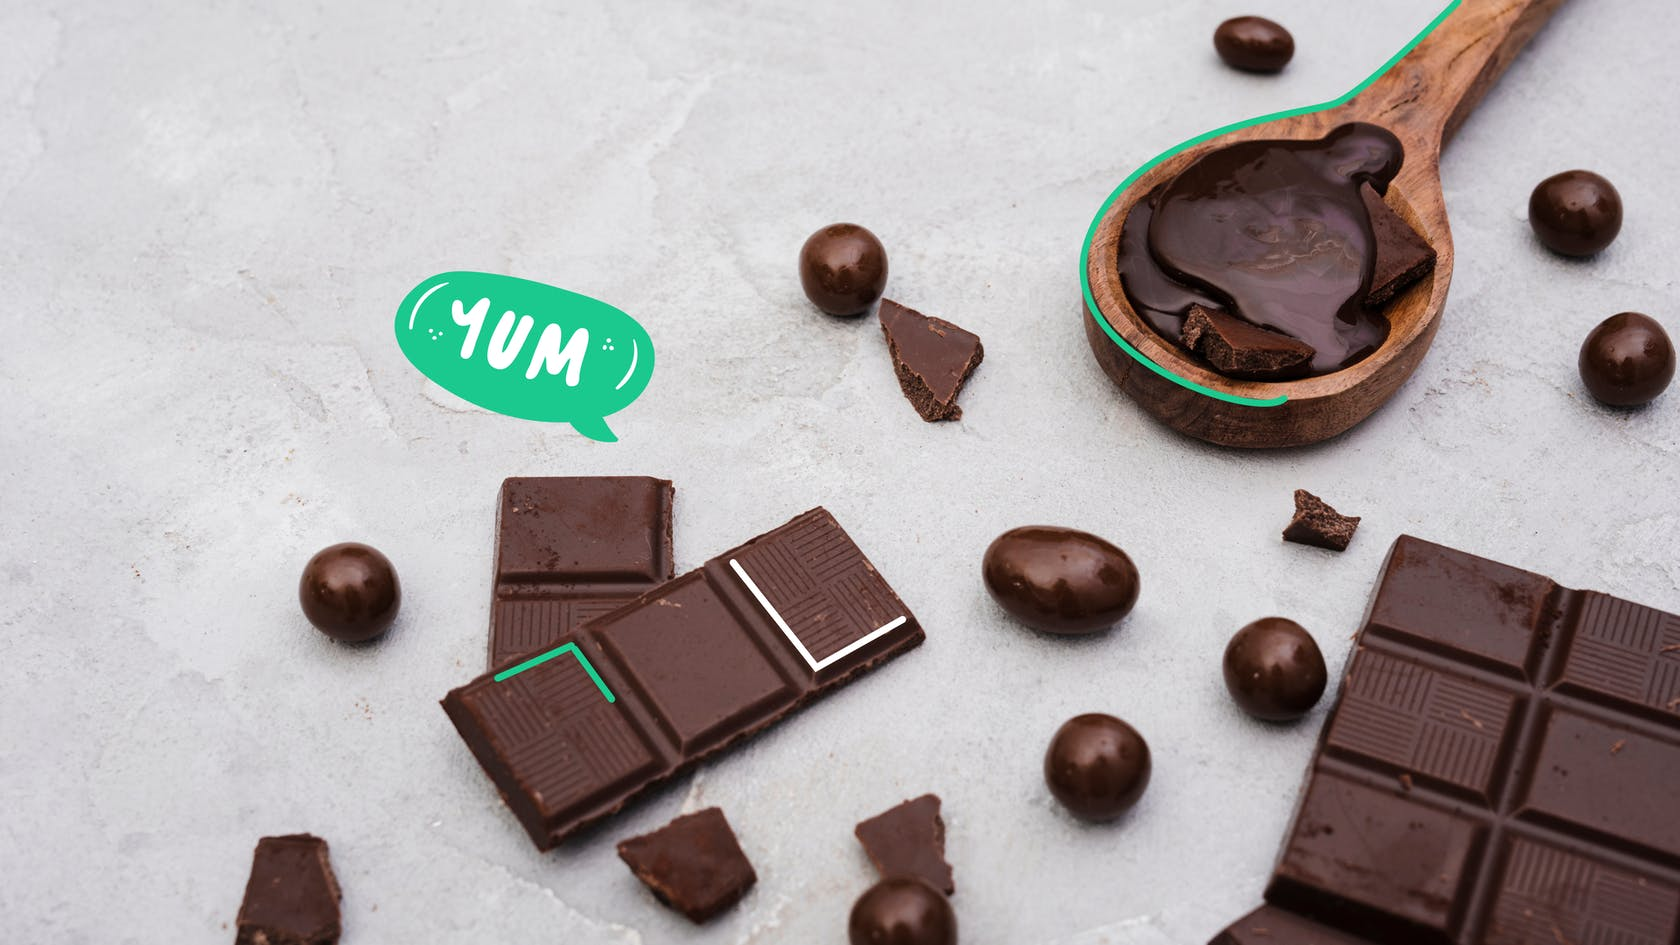 Keto Chocolate: Best Options for a Low Carb Diet